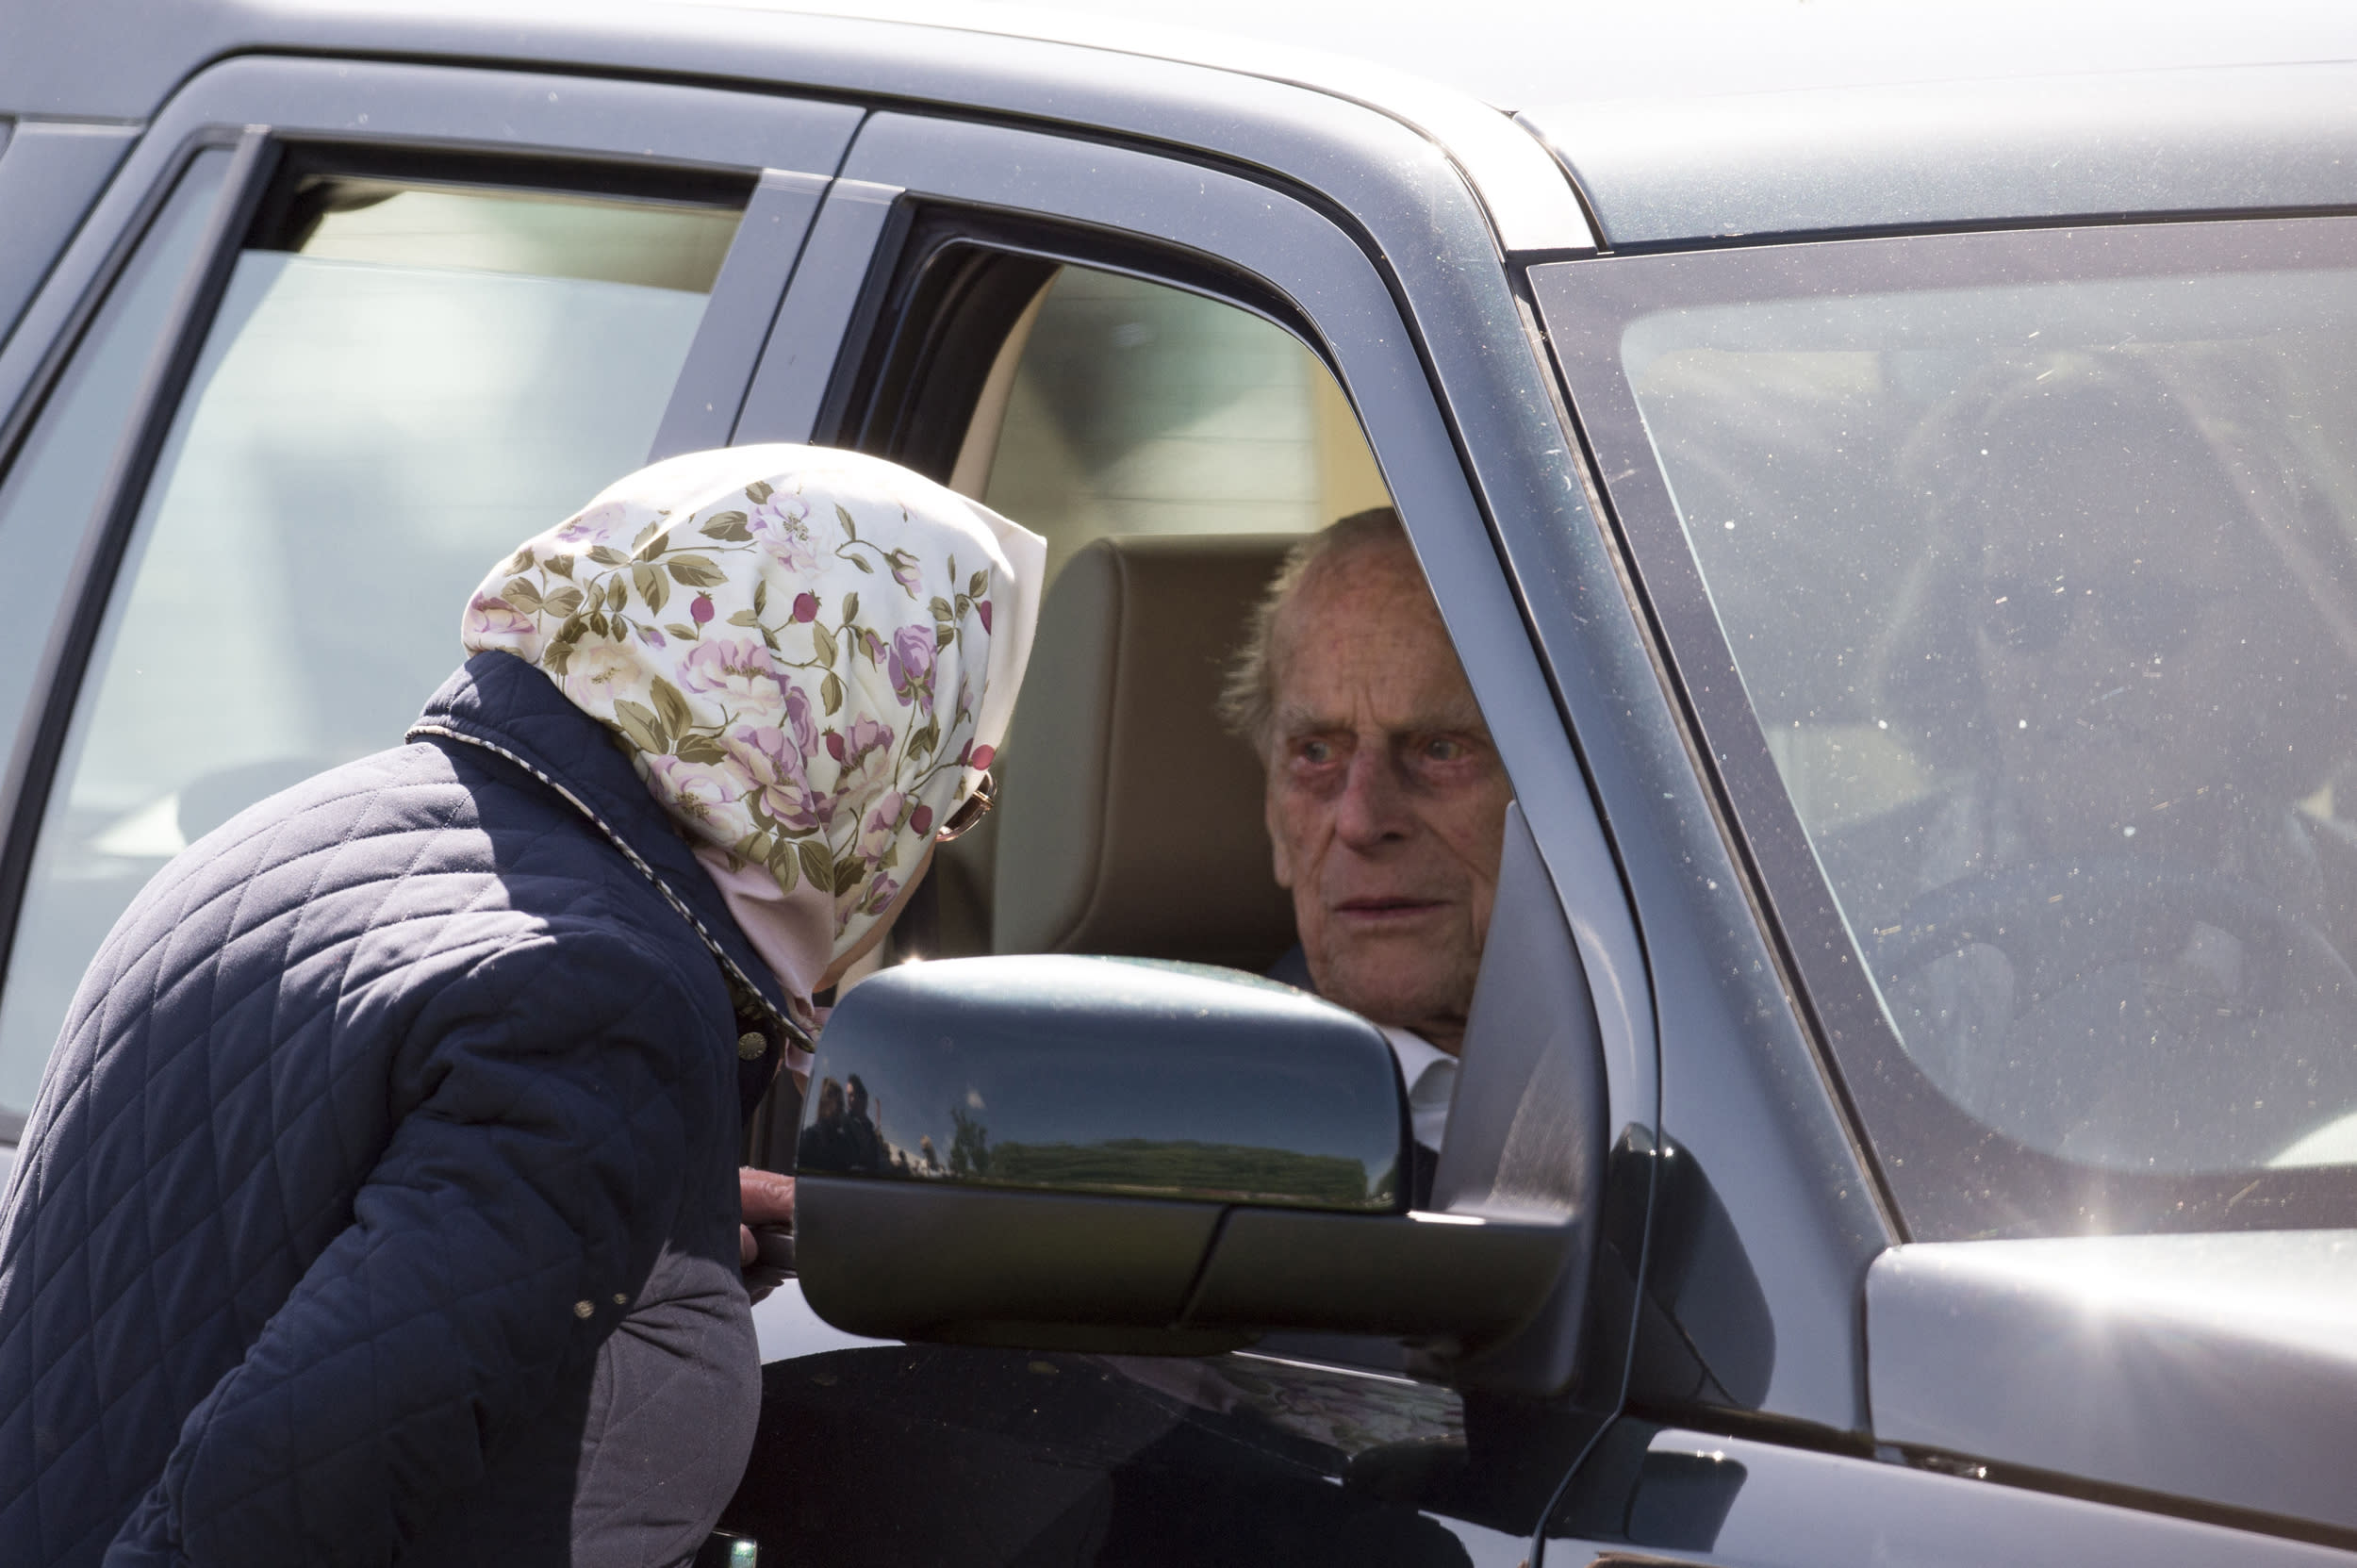 January 17, 2019 - Prince Philip The Duke of Edinburgh was not injured in a two-car crash as he was driving his Land Rover near Sandringham Estate. - File Photo by: zz/KGC-178/STAR MAX/IPx 2018 5/11/18 Her Majesty Queen Elizabeth II and Prince Philip The Duke of Edinburgh at The Royal Windsor Horse Show. (Windsor, Berkshire, England, UK)